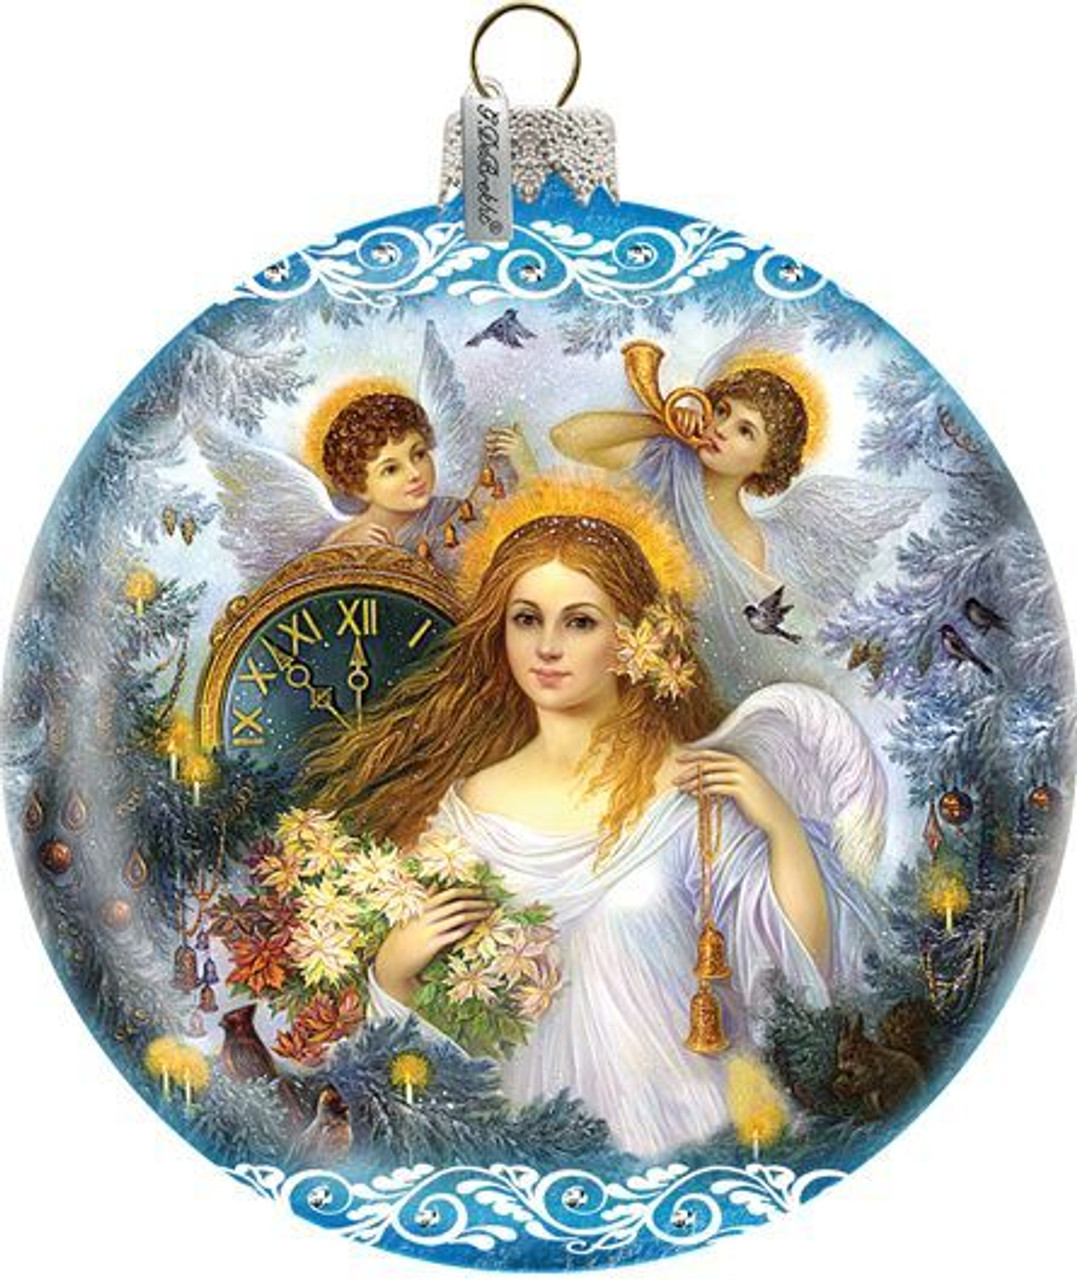 Vintage Style Christmas Ornaments.Time Angel Christmas Ornament Vintage Style Art Hand Painted Glass 5 1 2